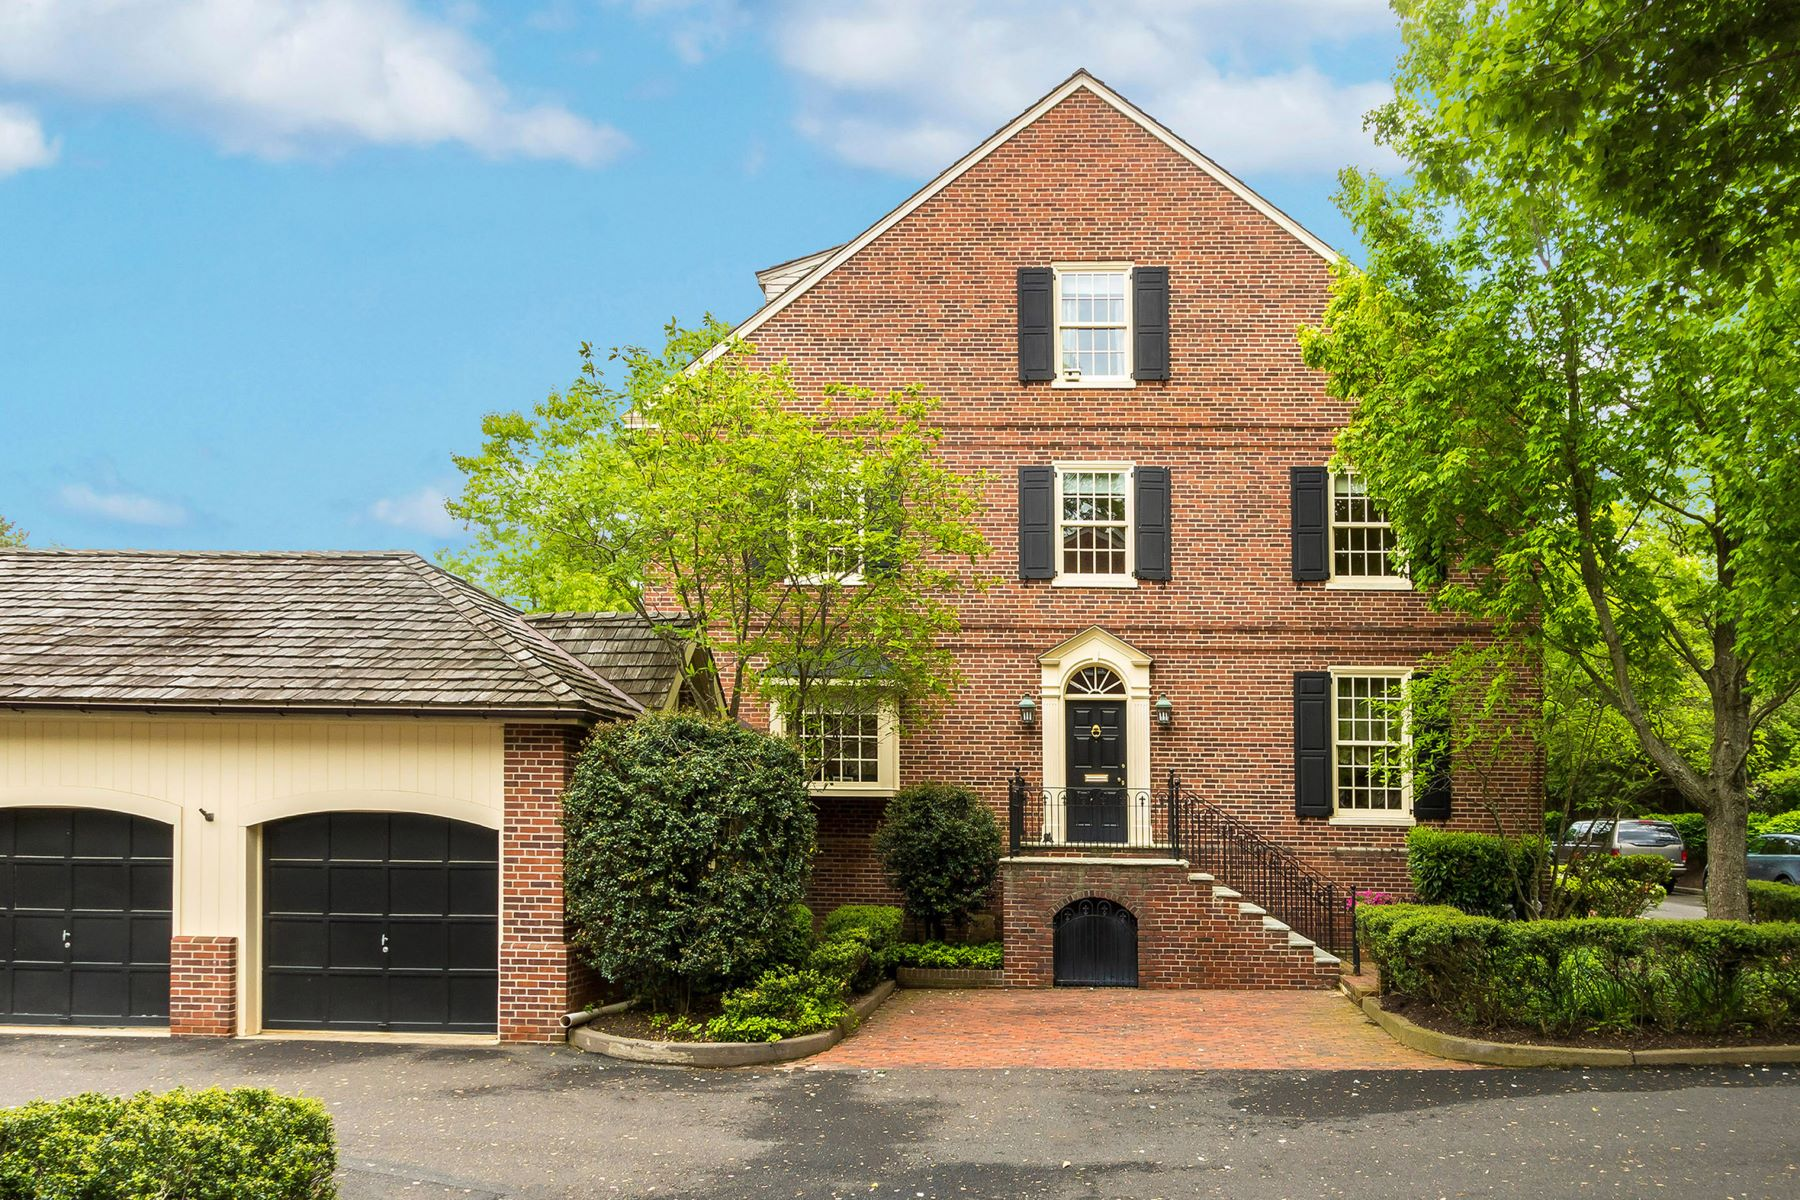 townhouses for Sale at 5 BARCLAY CT Newtown, Pennsylvania 18940 United States